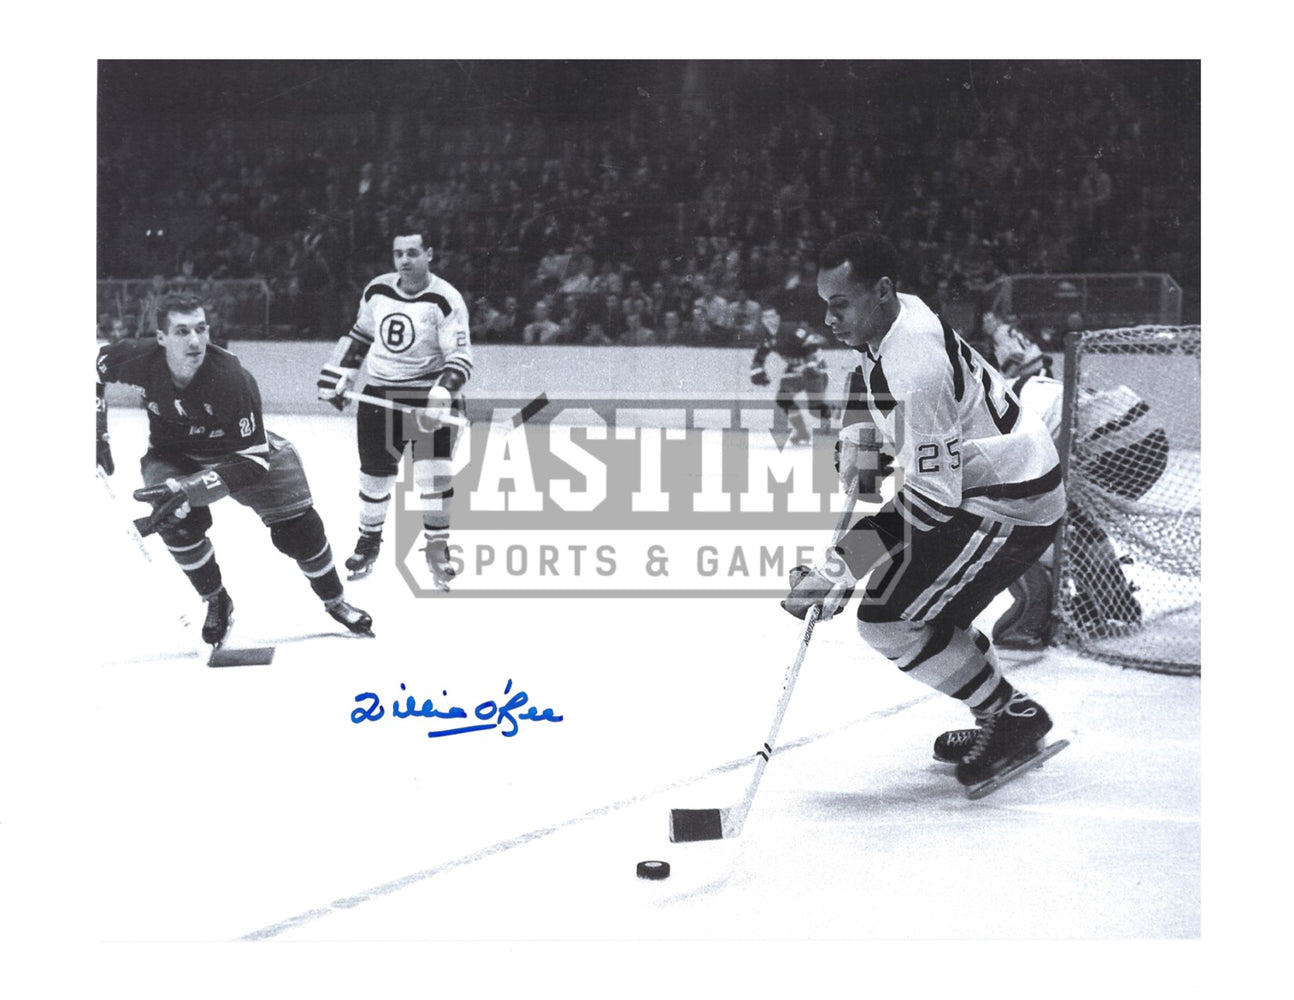 Willie O'Ree Autographed 8X10 Boston Bruins Away Jersey (Skating With Puck) - Pastime Sports & Games